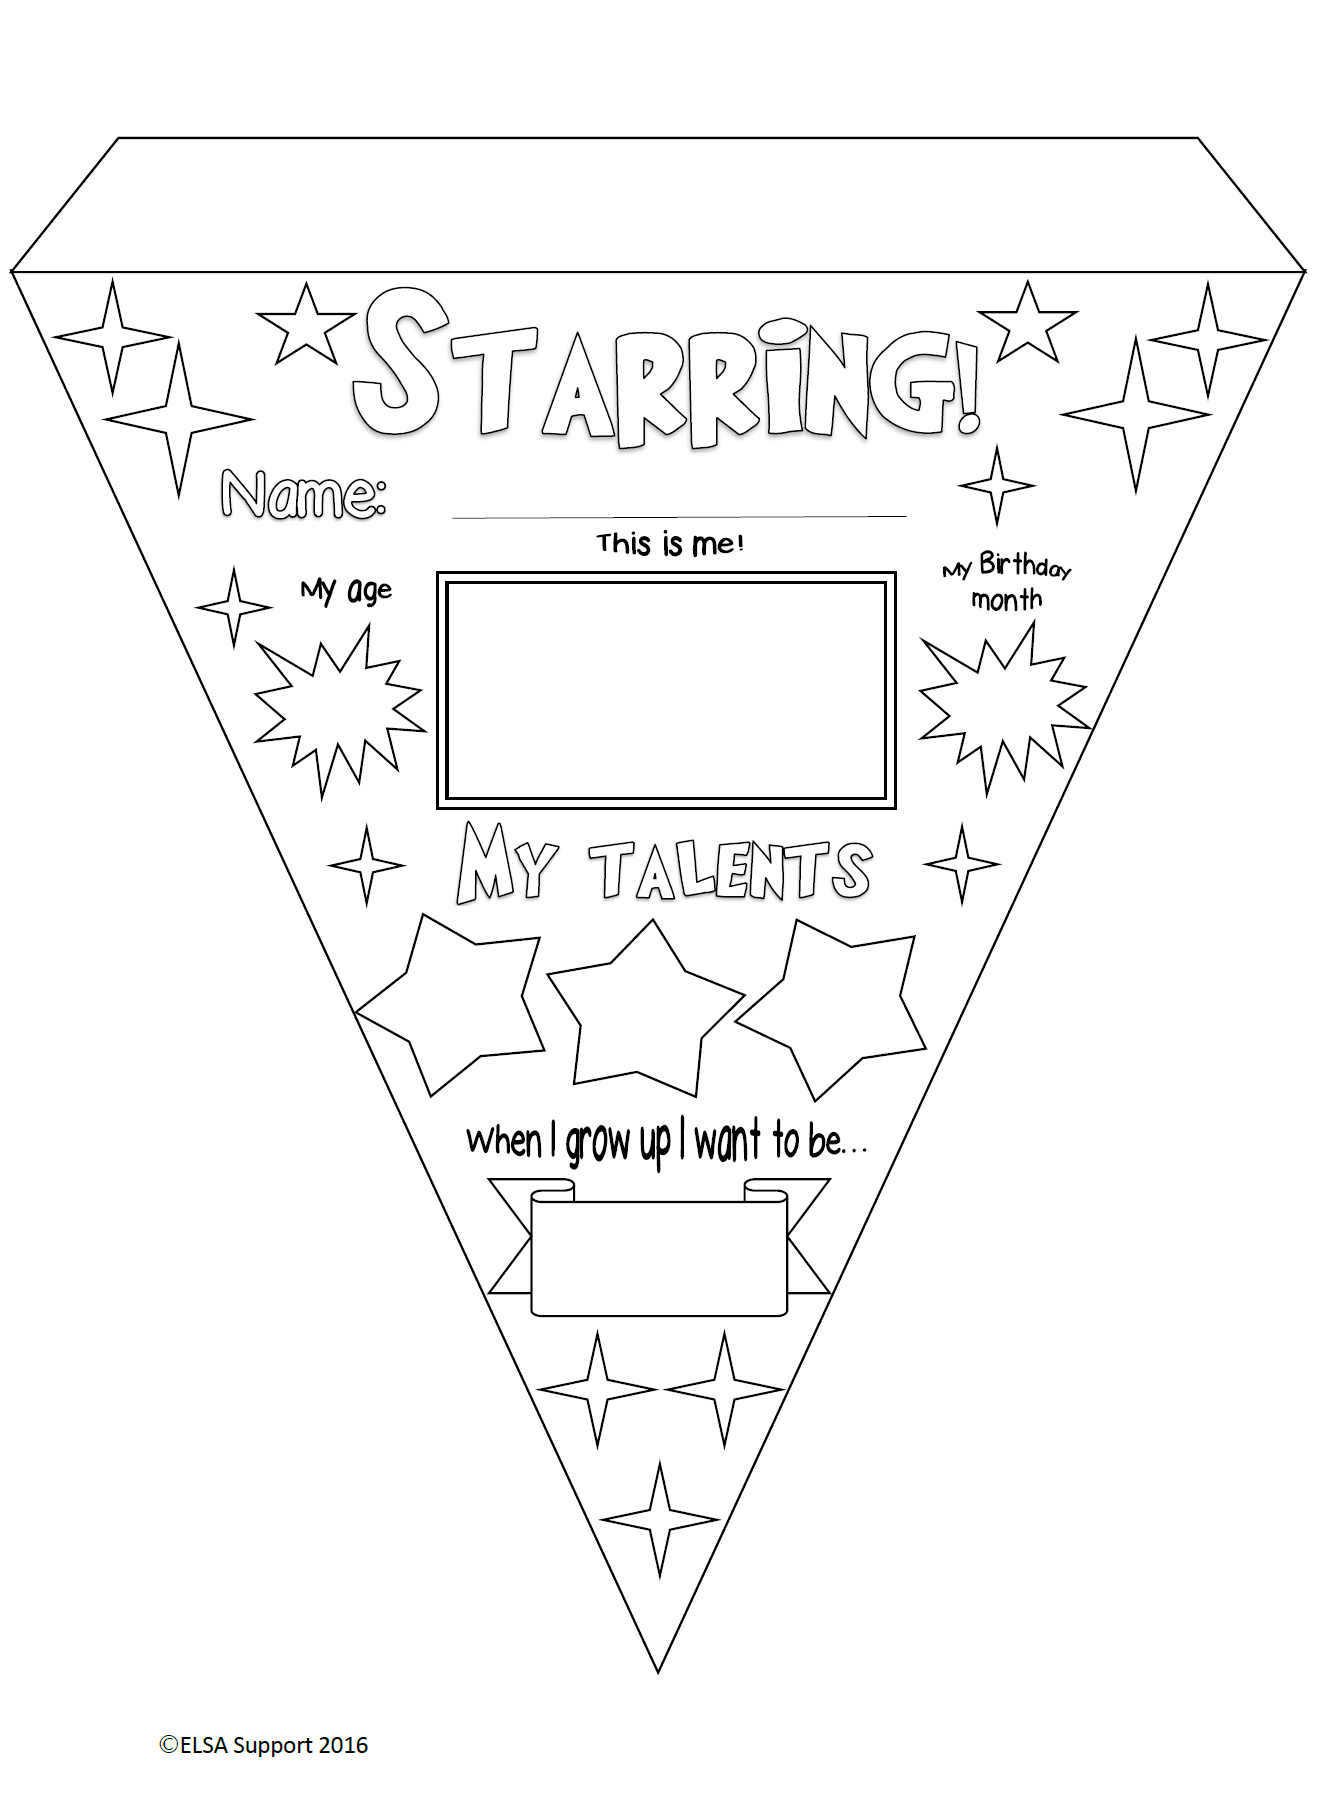 bunting - transition activity